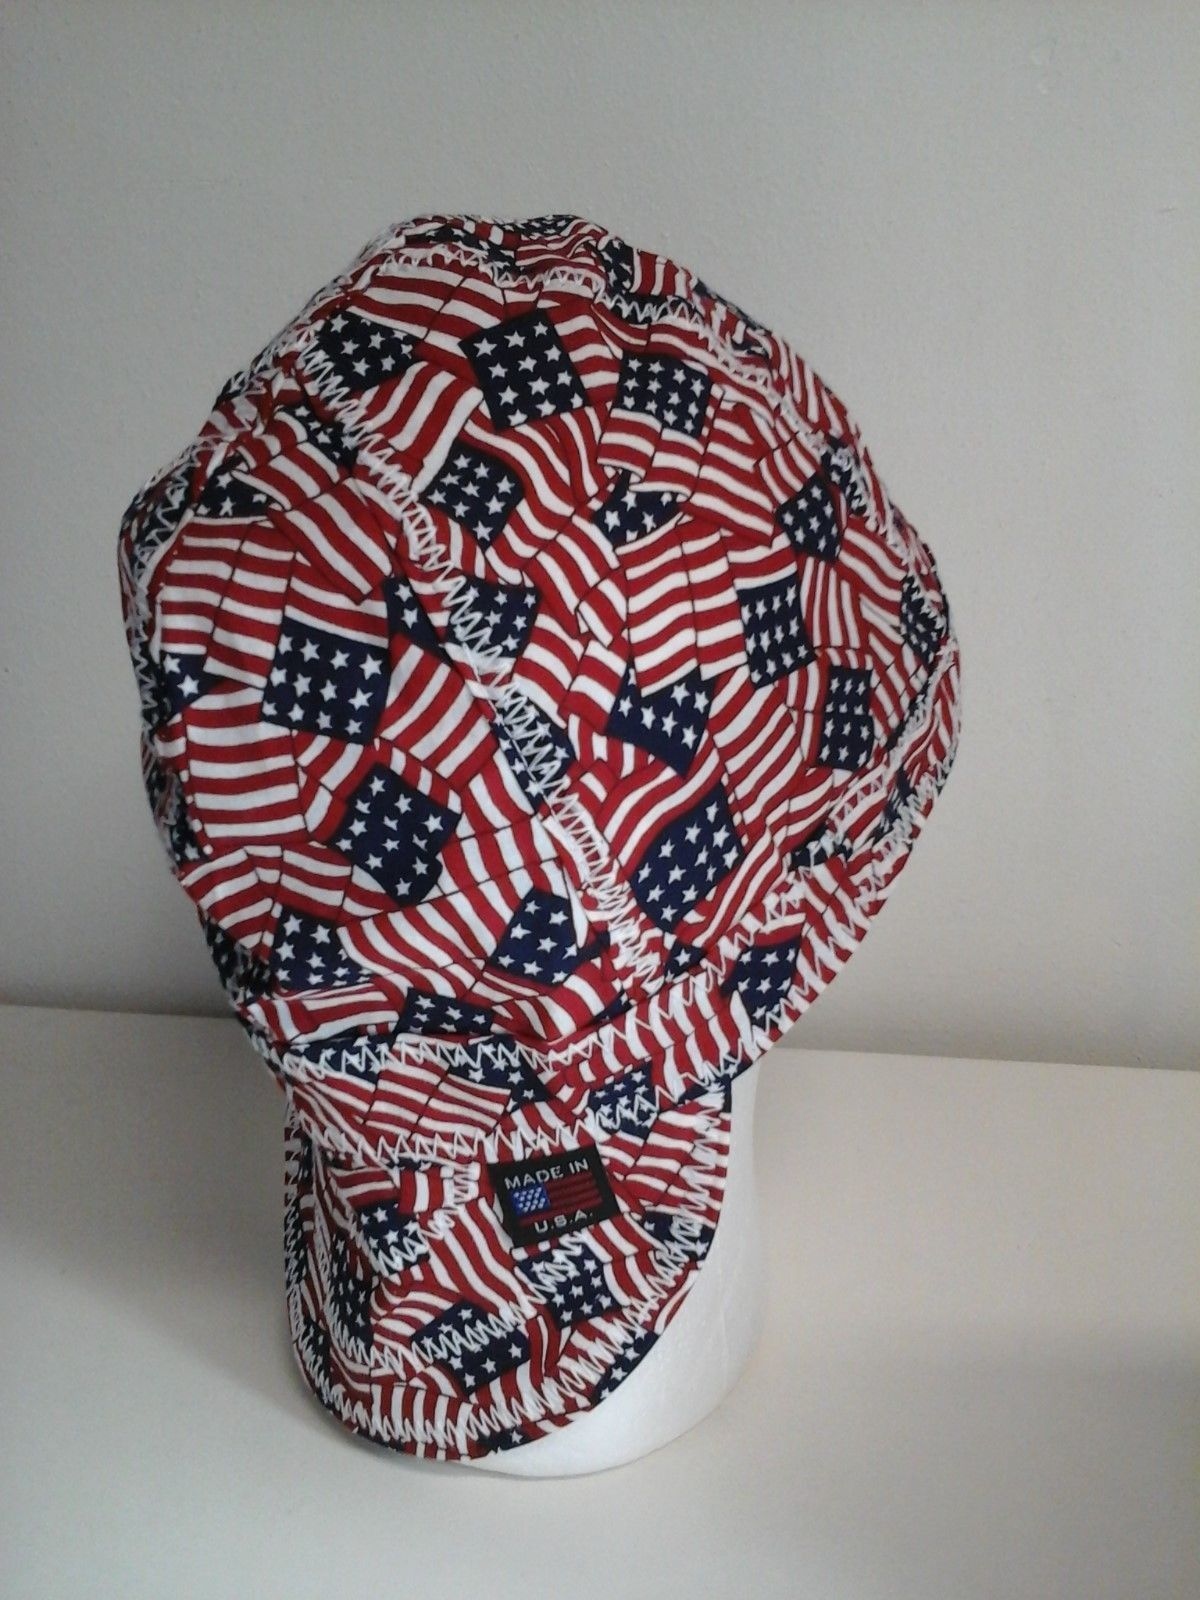 New Usa Tossed Flags Print Cotton Size 7 1 8 Welders Hat Pipefitter Flag Prints Printed Cotton Hats